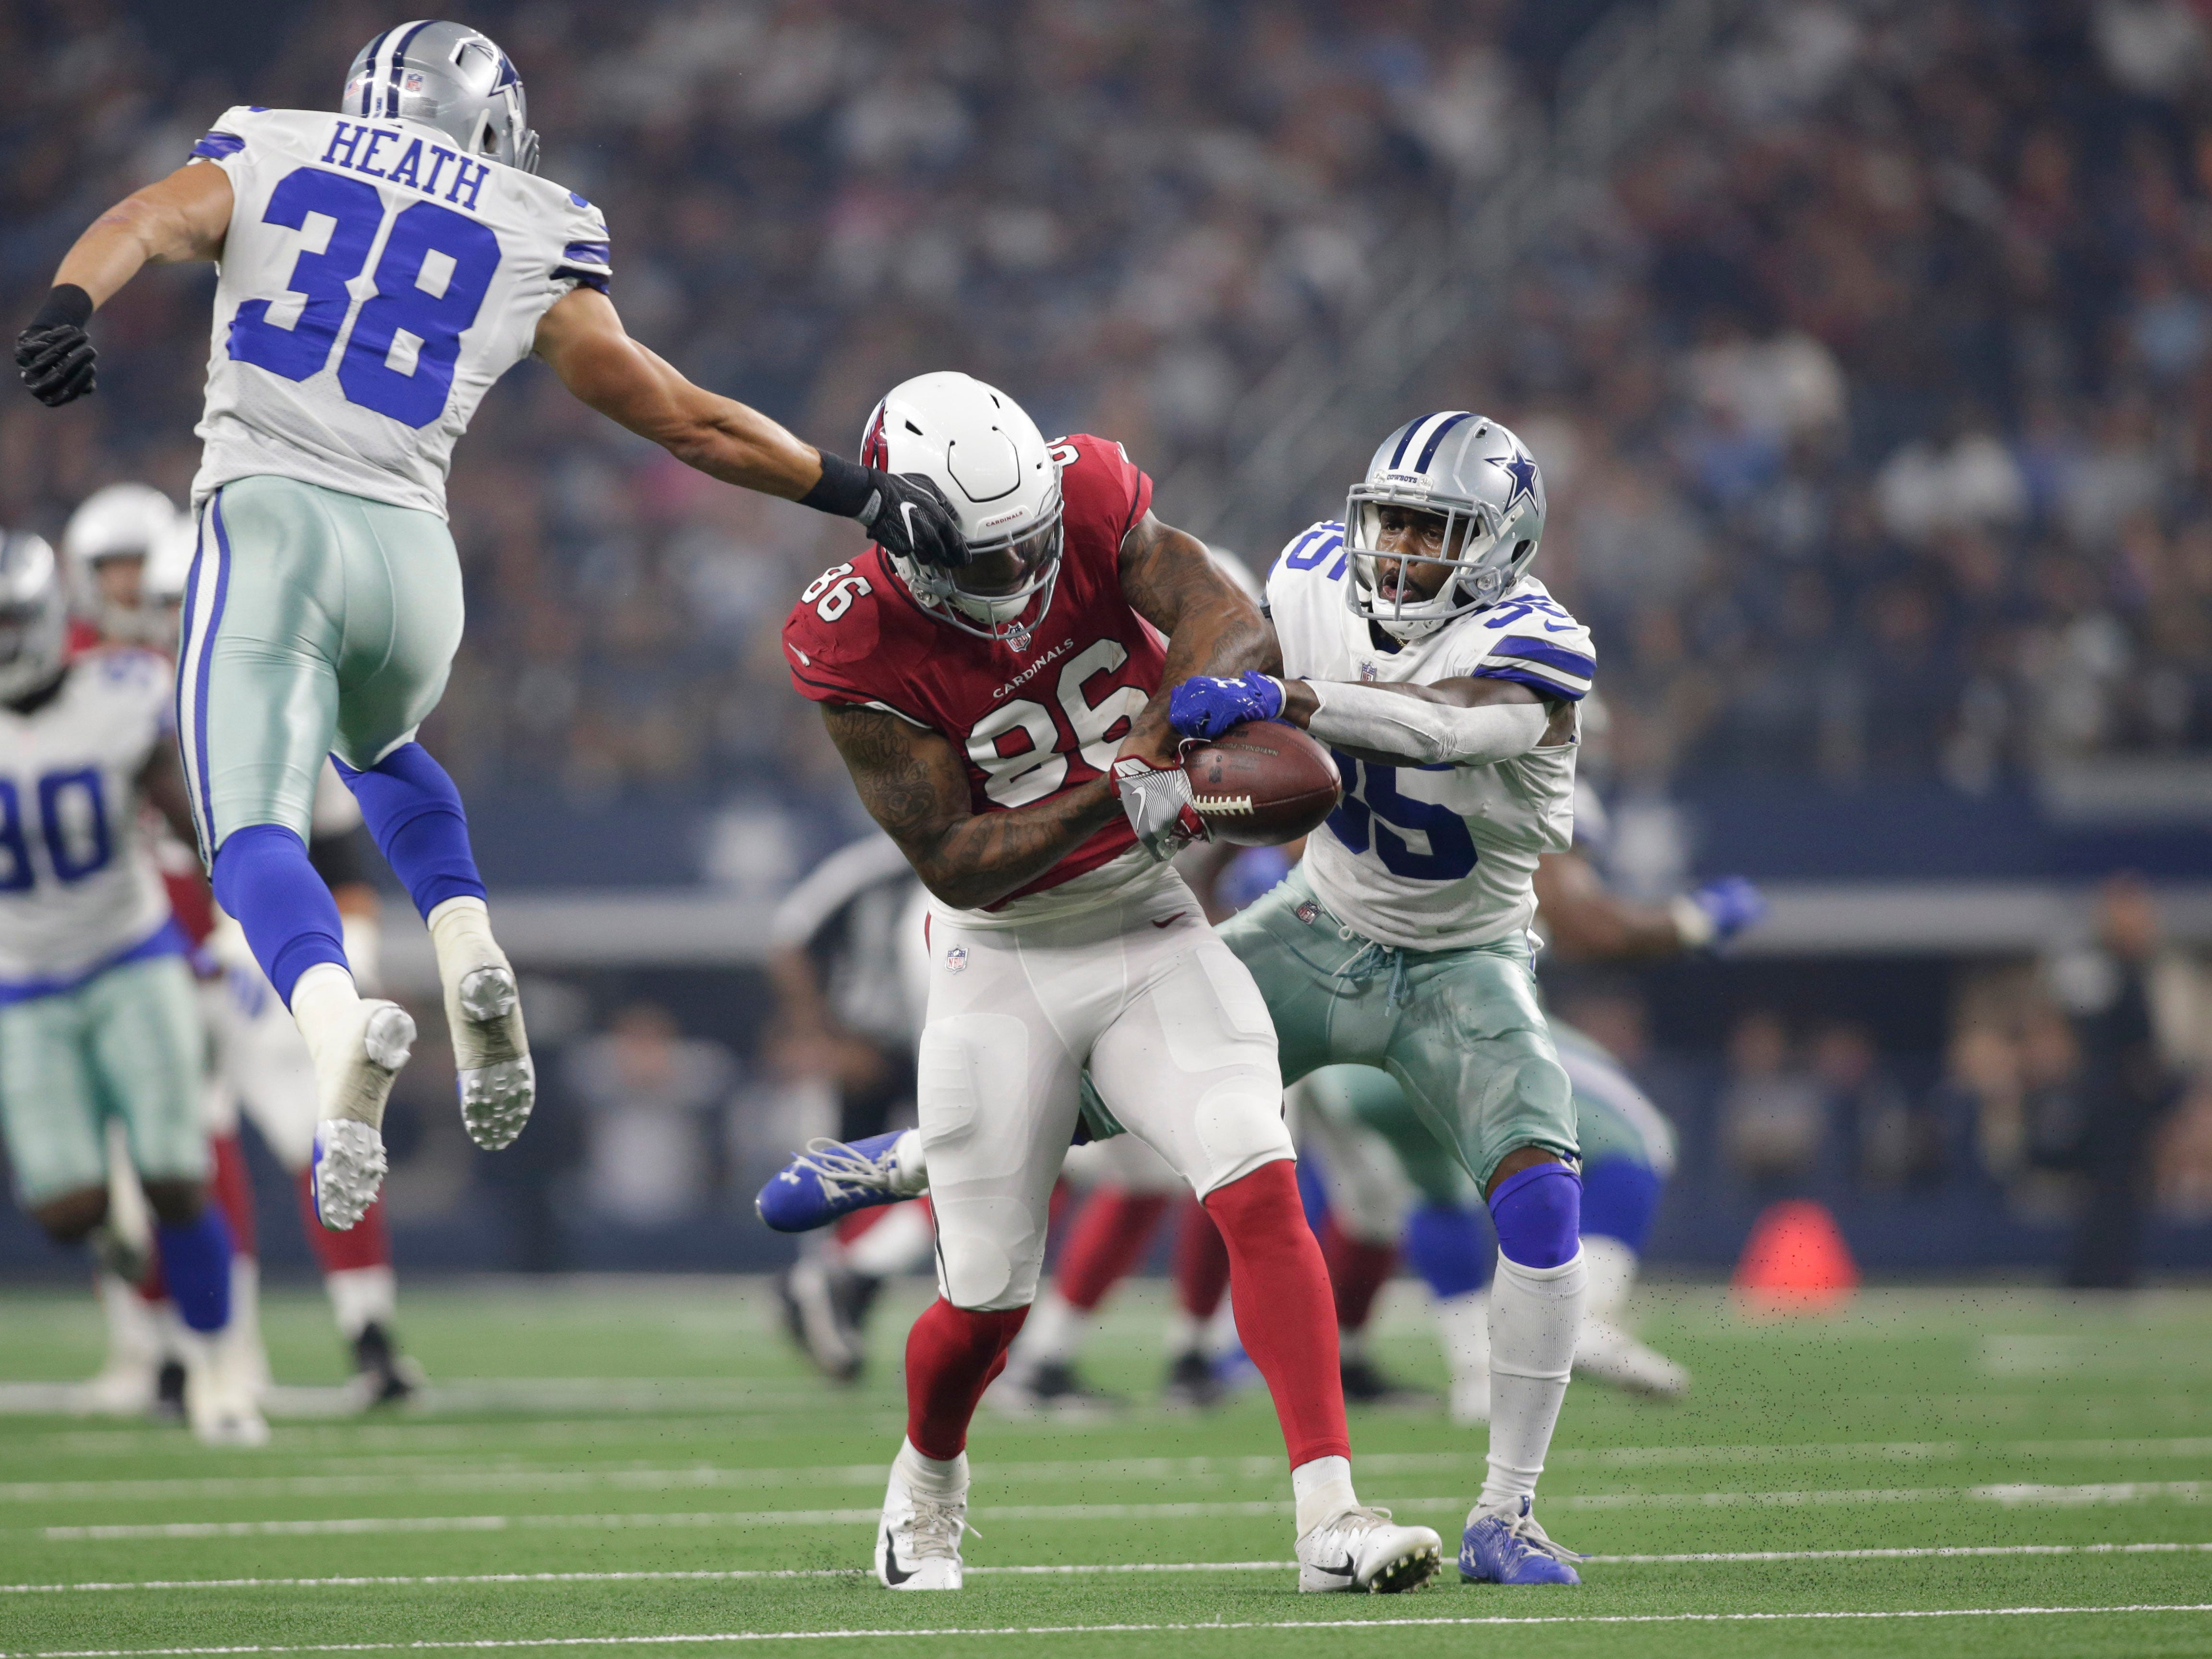 Aug 26, 2018; Arlington, TX, USA; Dallas Cowboys defensive back Kavon Frazier (35) breaks up a pass against Arizona Cardinals tight end Ricky Seals-Jones (86) in the first quarter at AT&T Stadium.